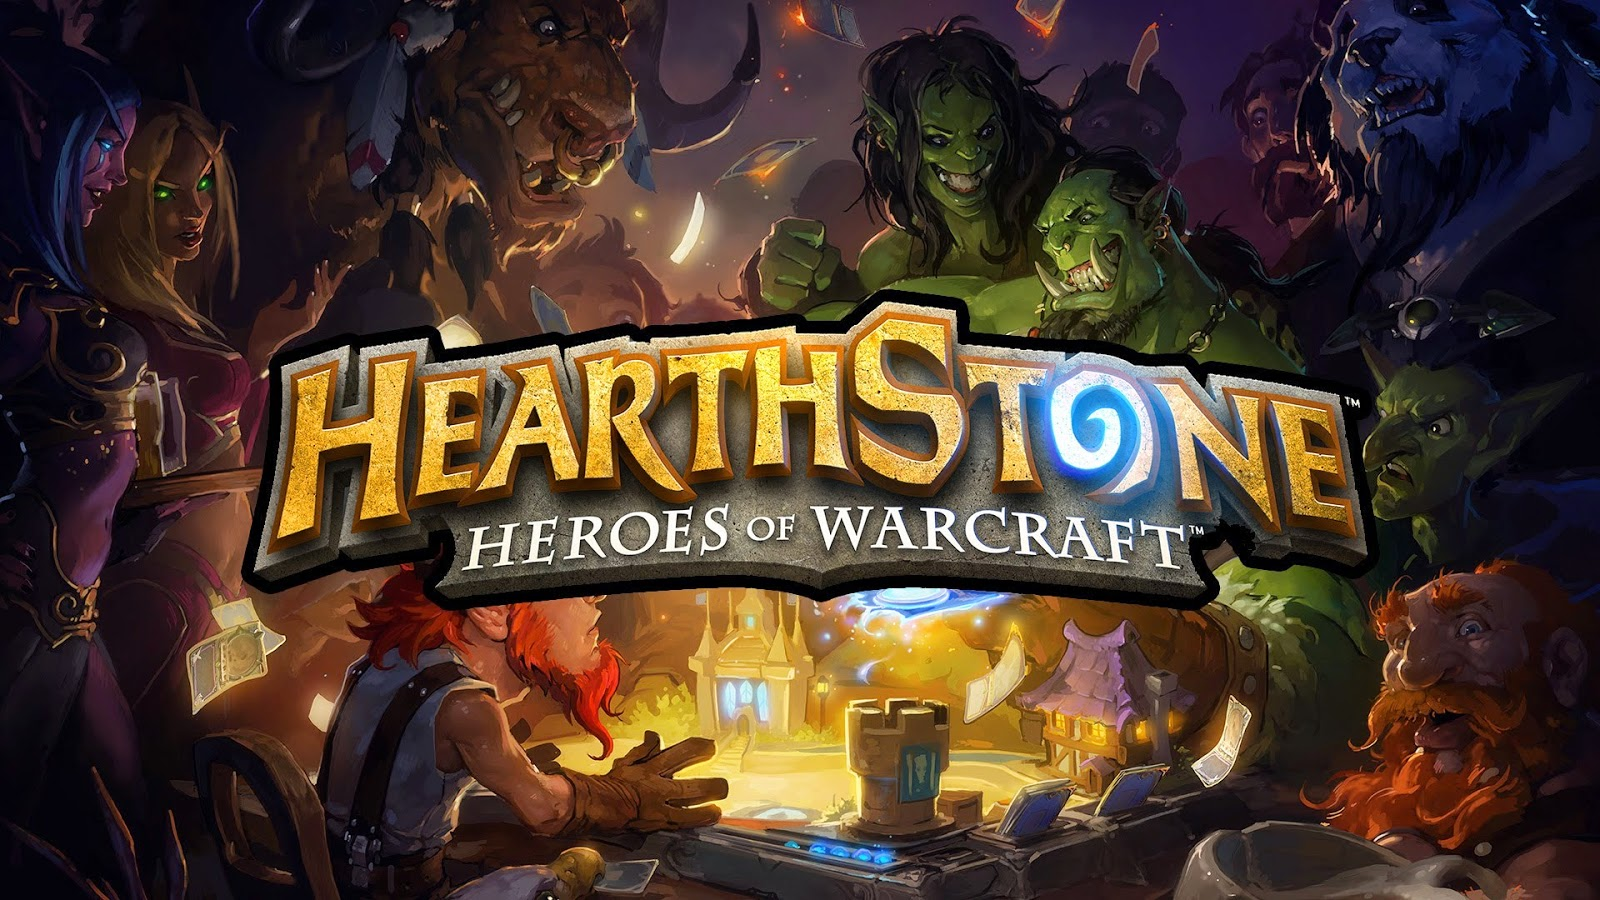 Blizzard, Hearthstone, and China – Bans, Backlash, and Politics